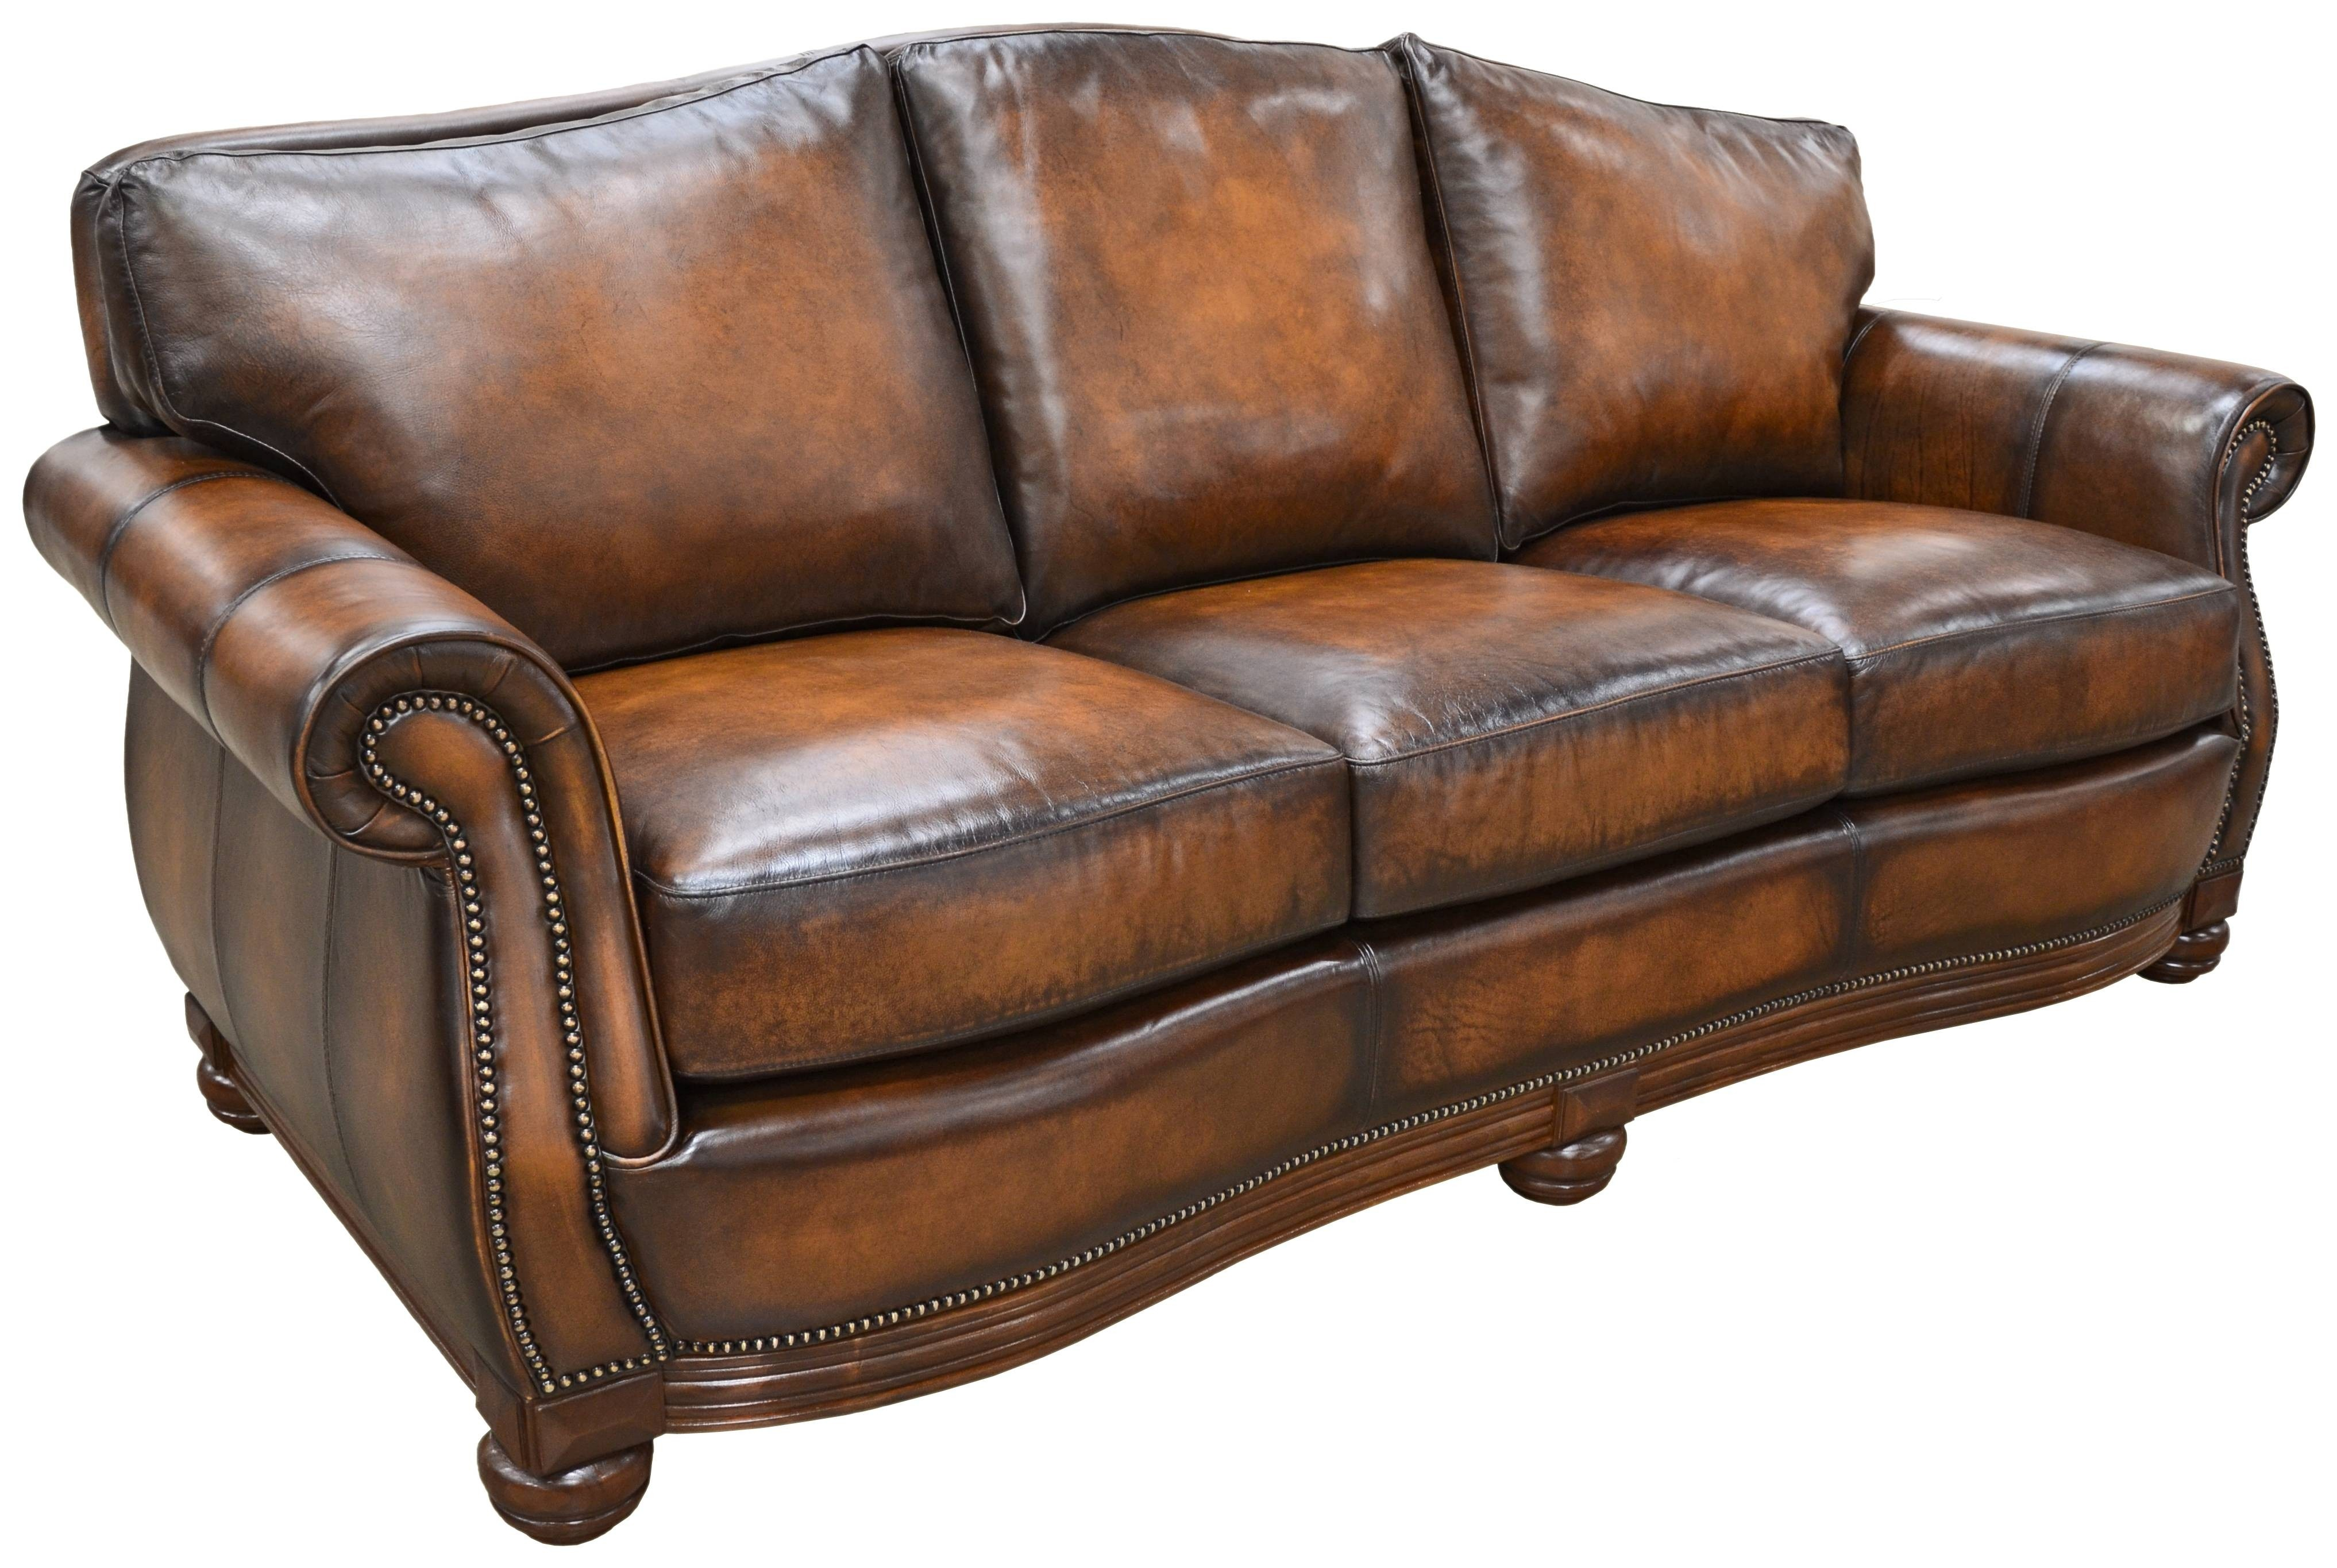 Camelback Leather sofa Awesome Best Of Camelback Leather sofas Picture